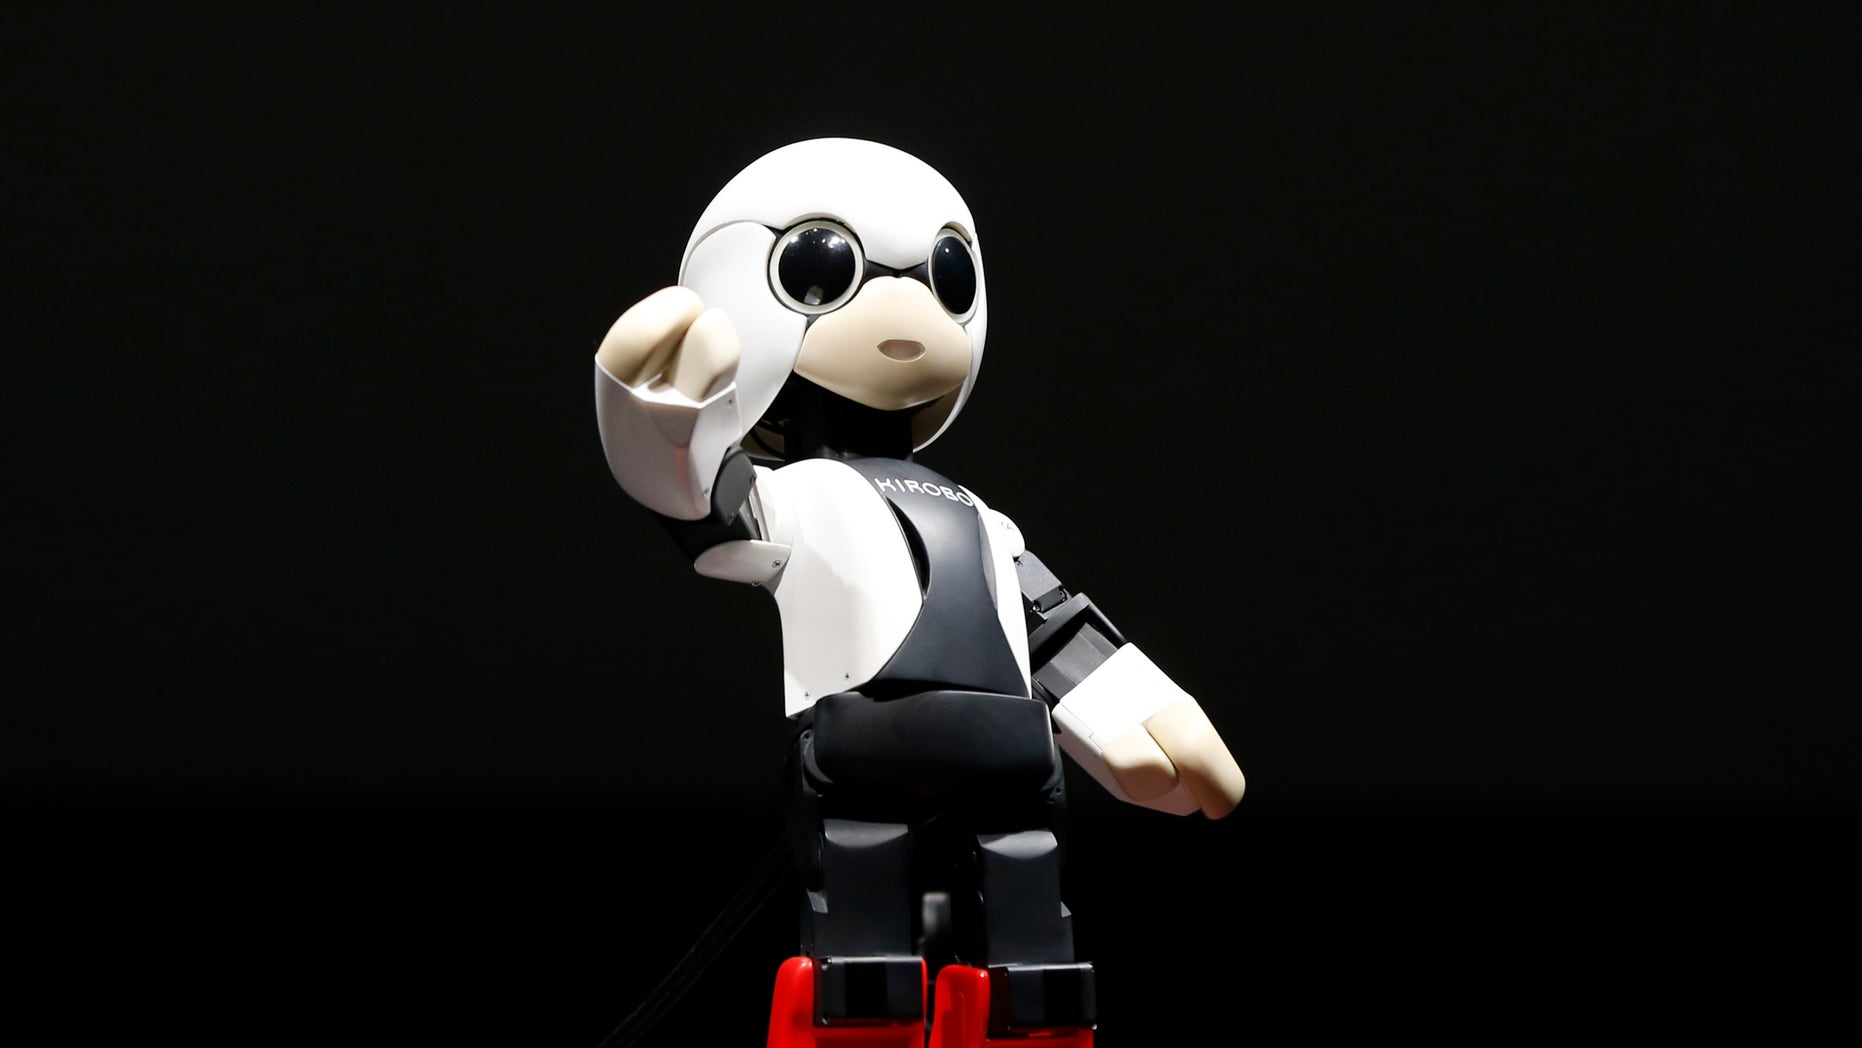 Humanoid communication robot Kirobo moves during its unveiling in Tokyo June 26, 2013.